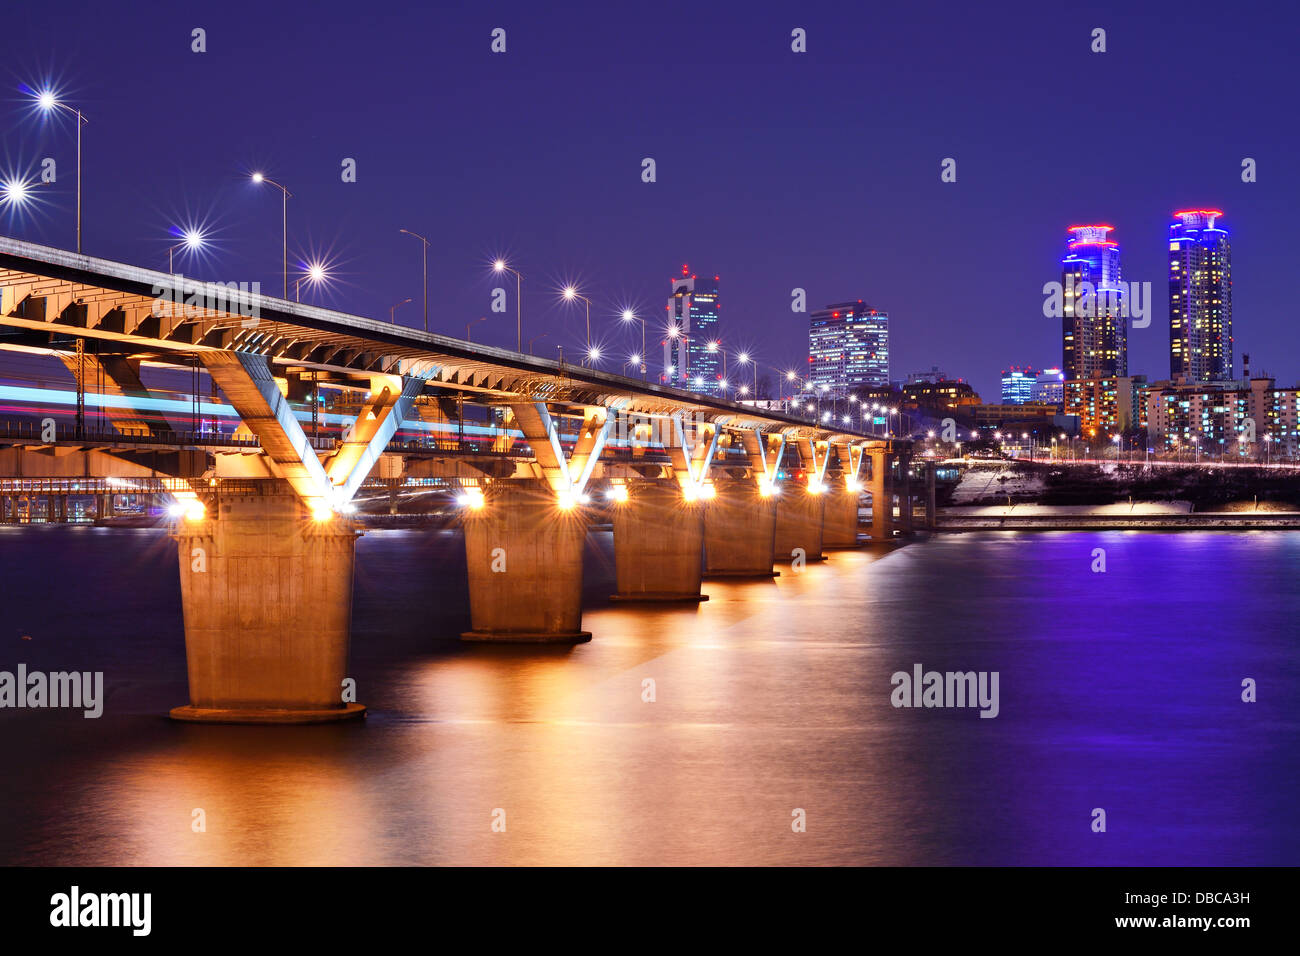 Han River and Bridge in Seoul, South Korea. Stock Photo